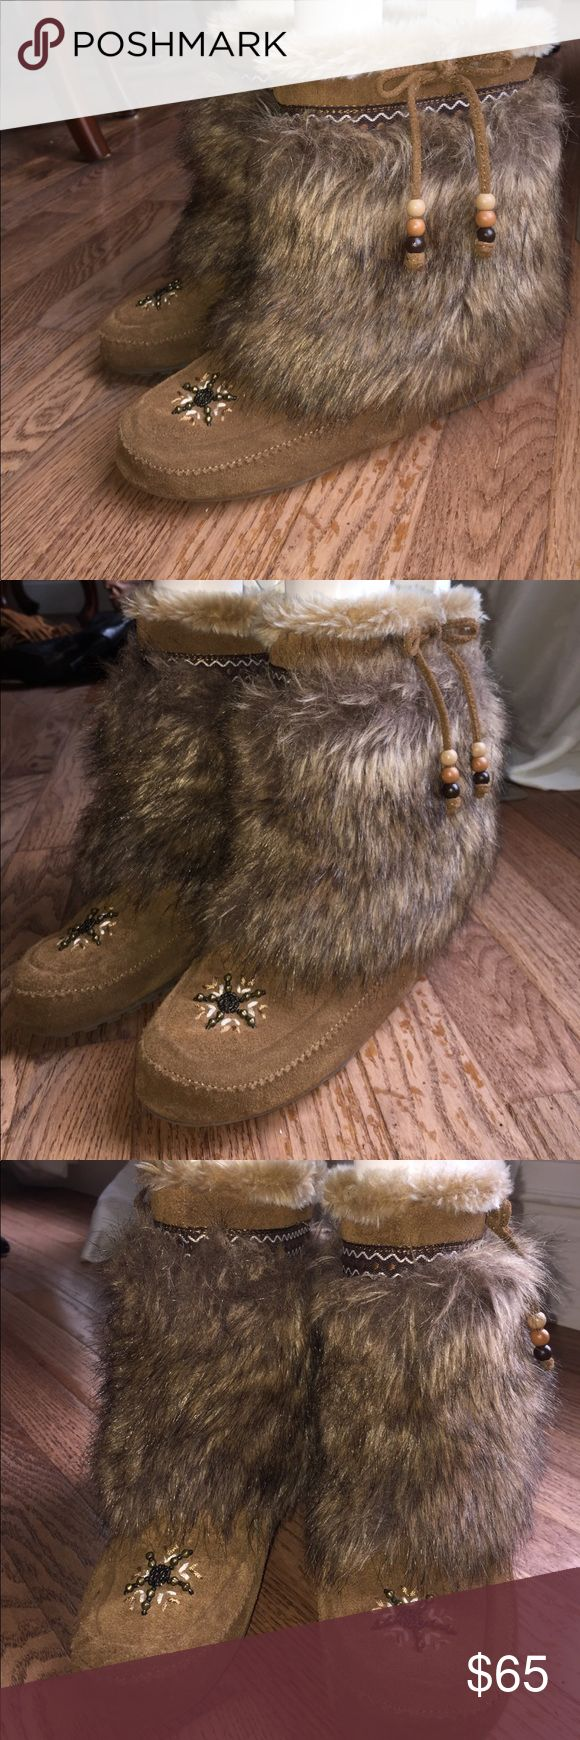 Minnetonka fur moccasin ankle booties Gently used, these boots are in almost perfect condition. They feature real leather upper and faux fur. There is a cute little design that goes around the top of the booties. True to size! I'm open to all offers!! :) Minnetonka Shoes Ankle Boots & Booties